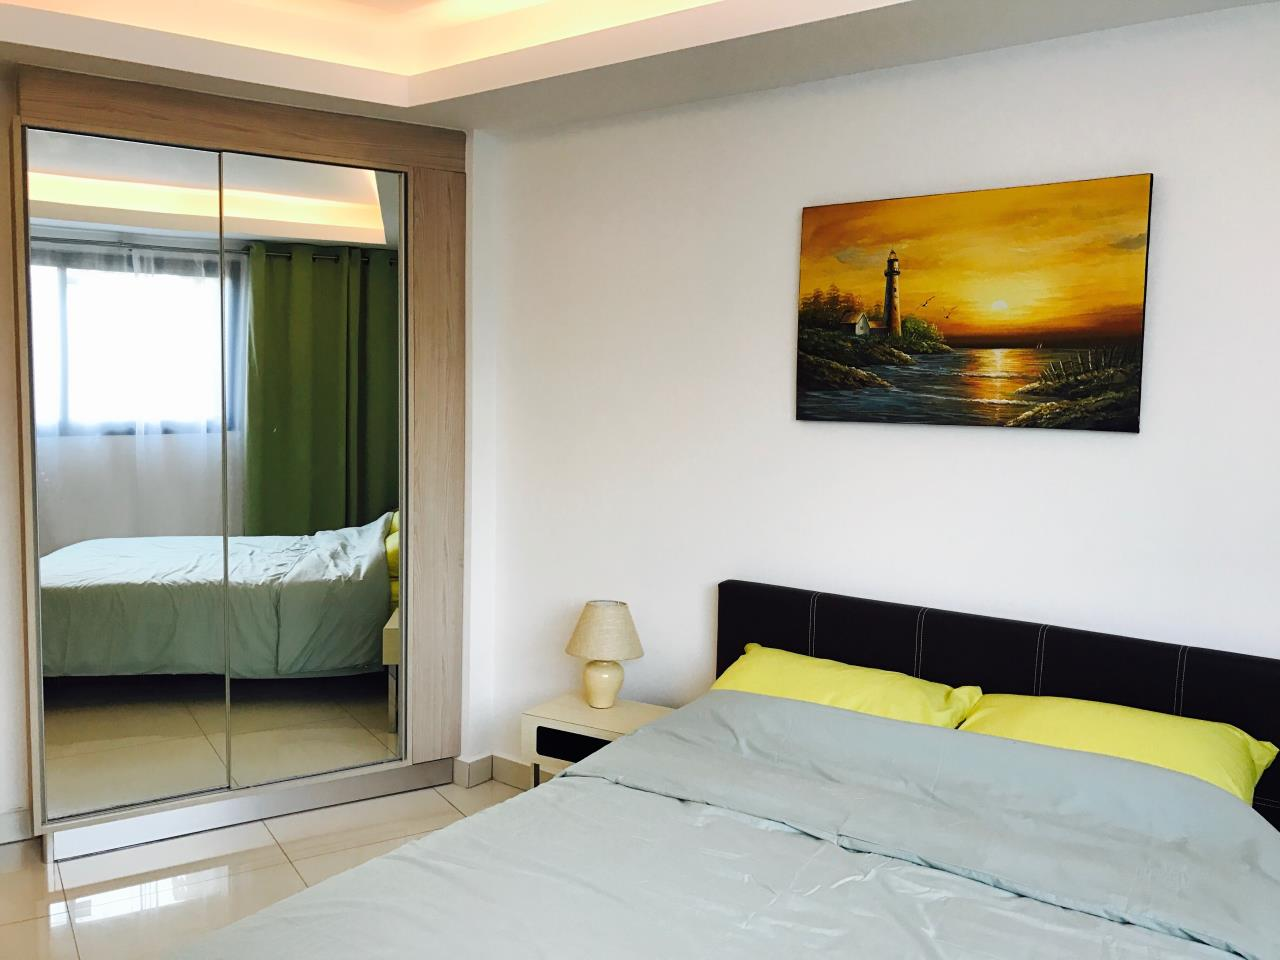 Thai Legacy Property Agency's Laguna Beach Resort 2. 1 bedroom for rent 6